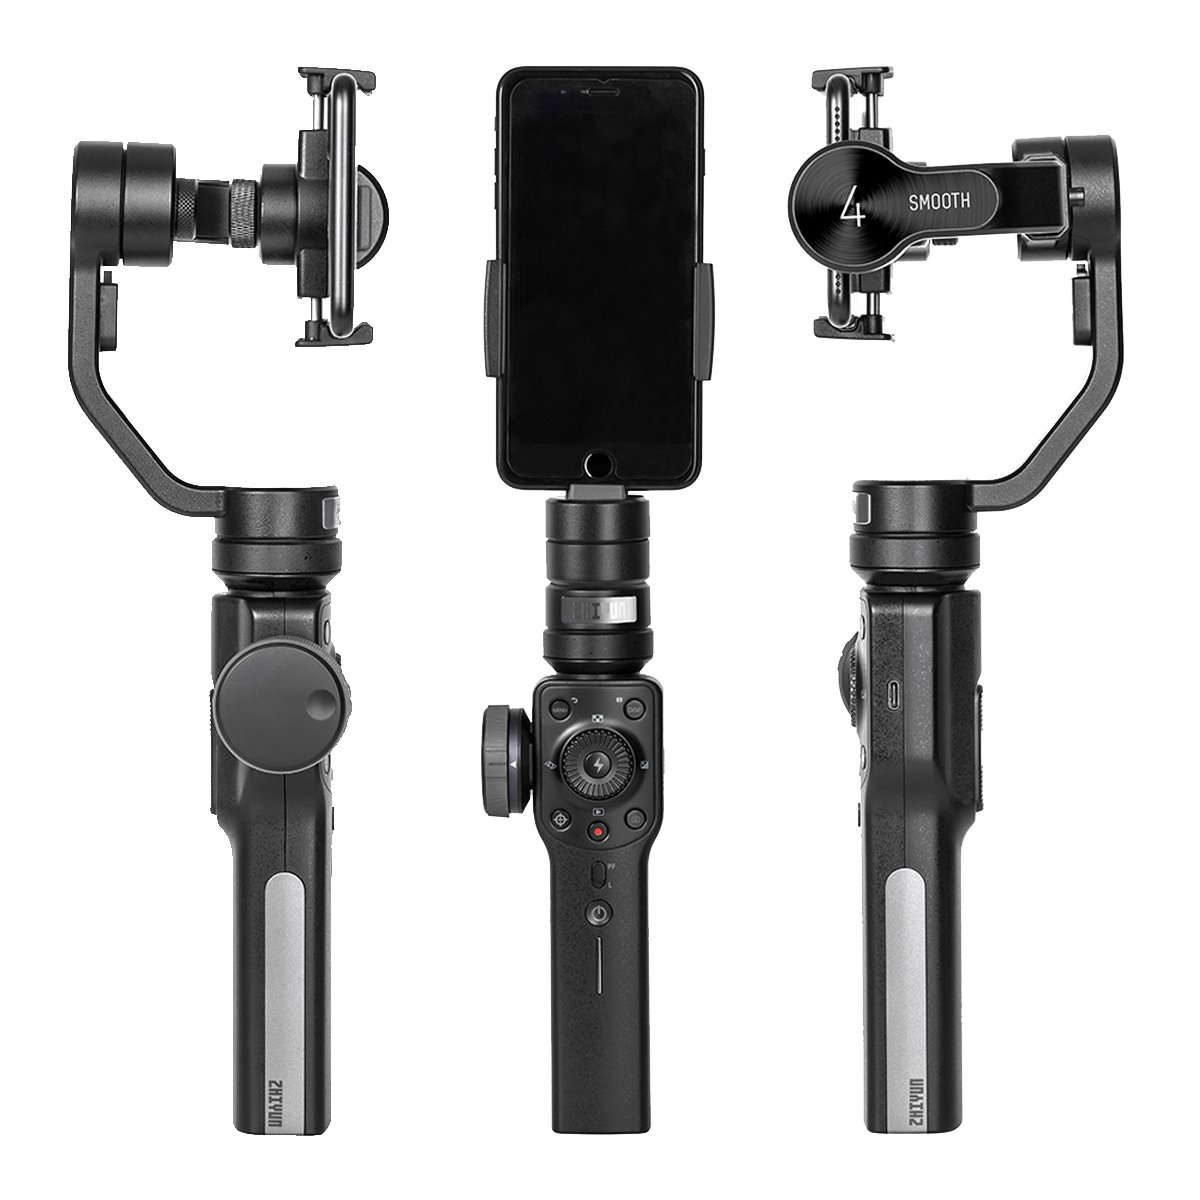 Gopro Adapter//Charging Cable//Counterweight Included Zhiyun Smooth 4 3-Axis Handheld Gimbal Stabilizer Compatible FiLMiC Pro for iPhone Xs Max//Xs//X//8 Plus//7//SE Samsung Galaxy S9+//S8//S7 etc Smartphones